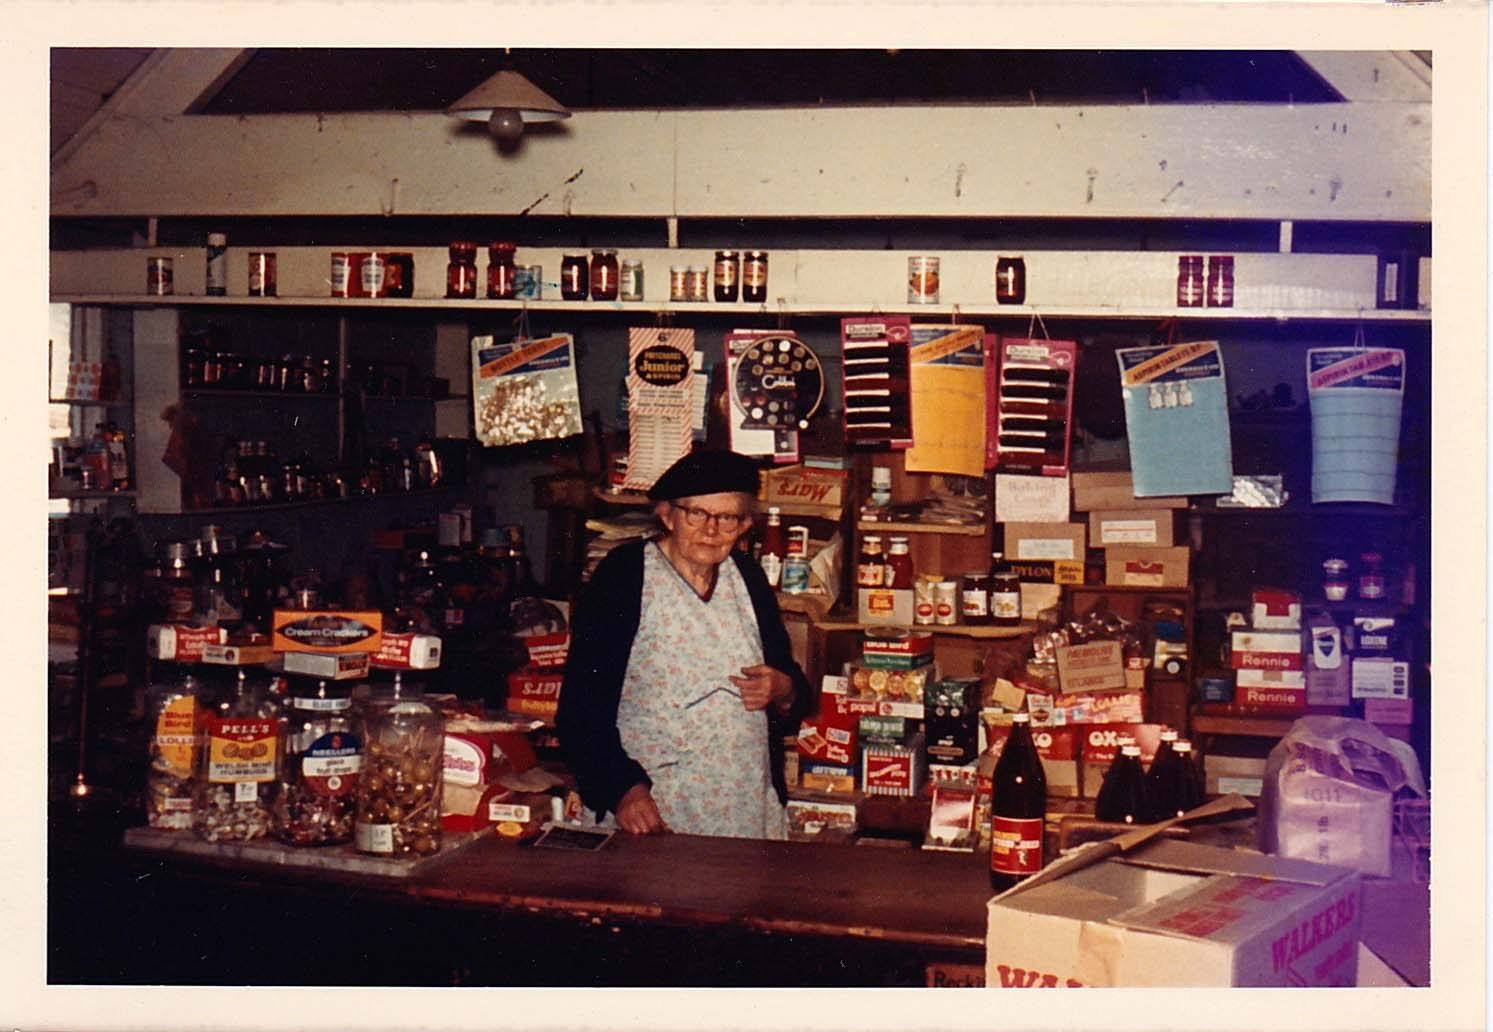 c 1970. Florence Lillian Farley in the shop.